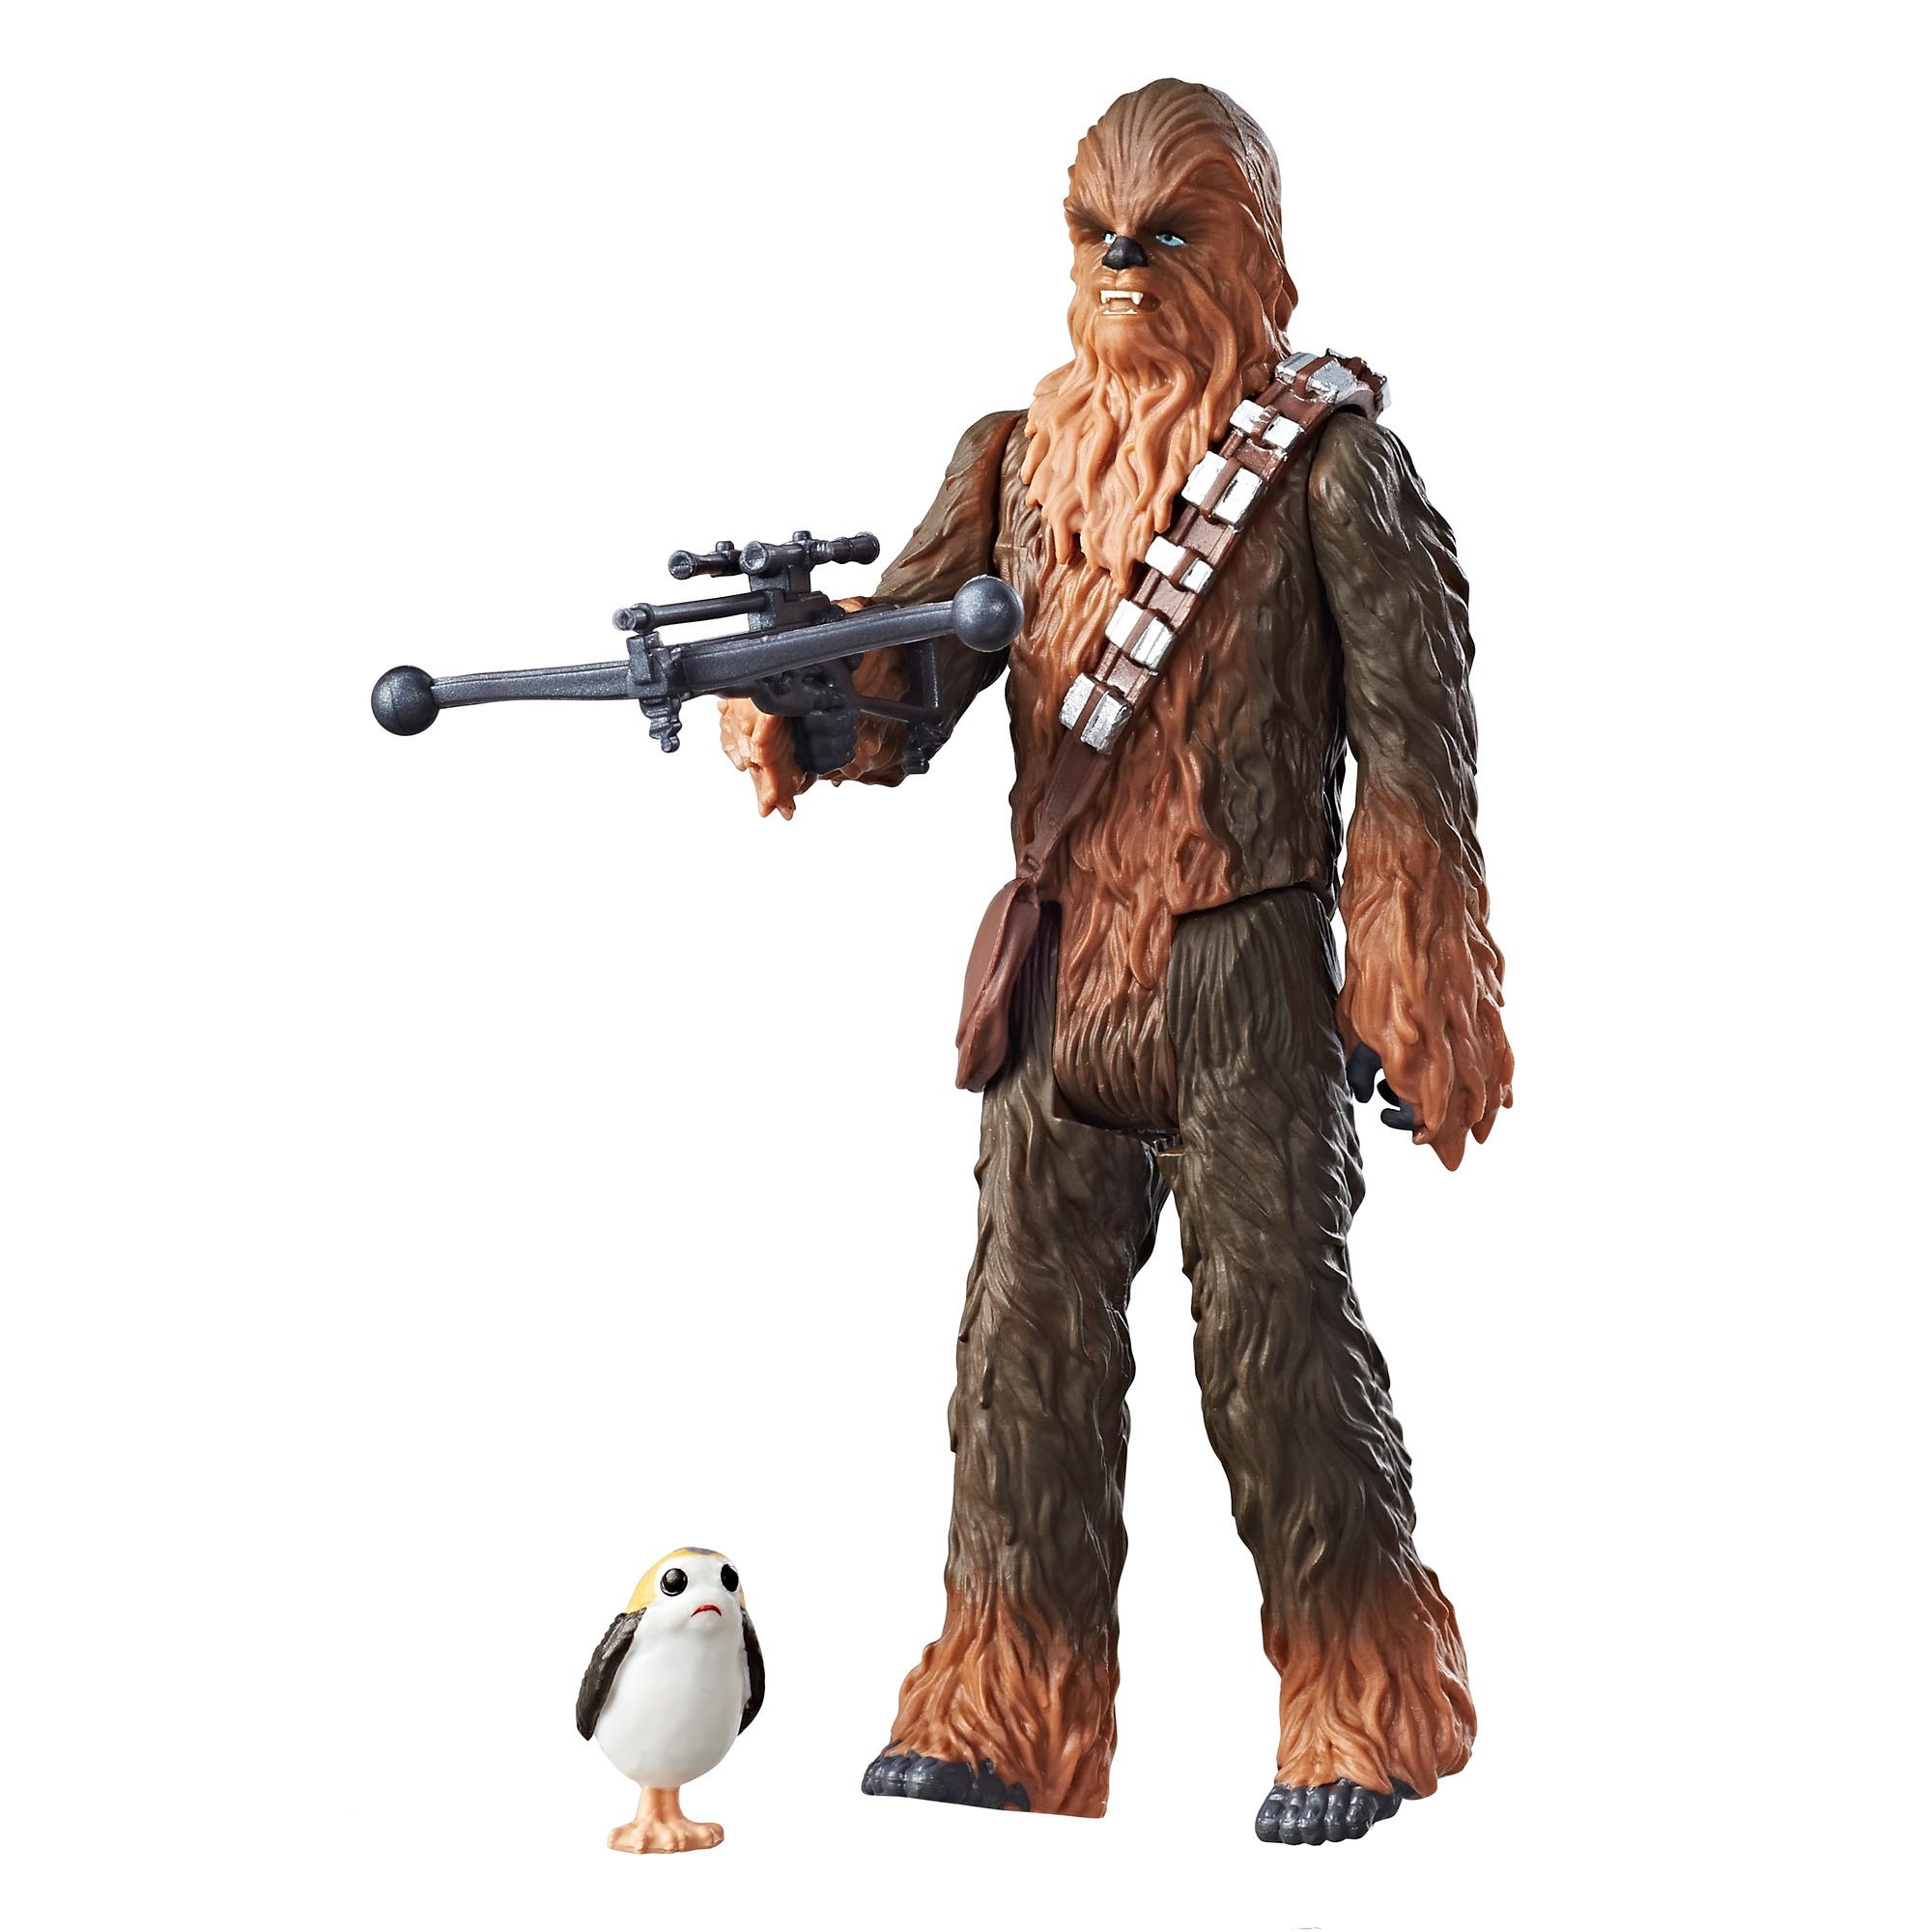 Star Wars Chewbacca Force Link Figure